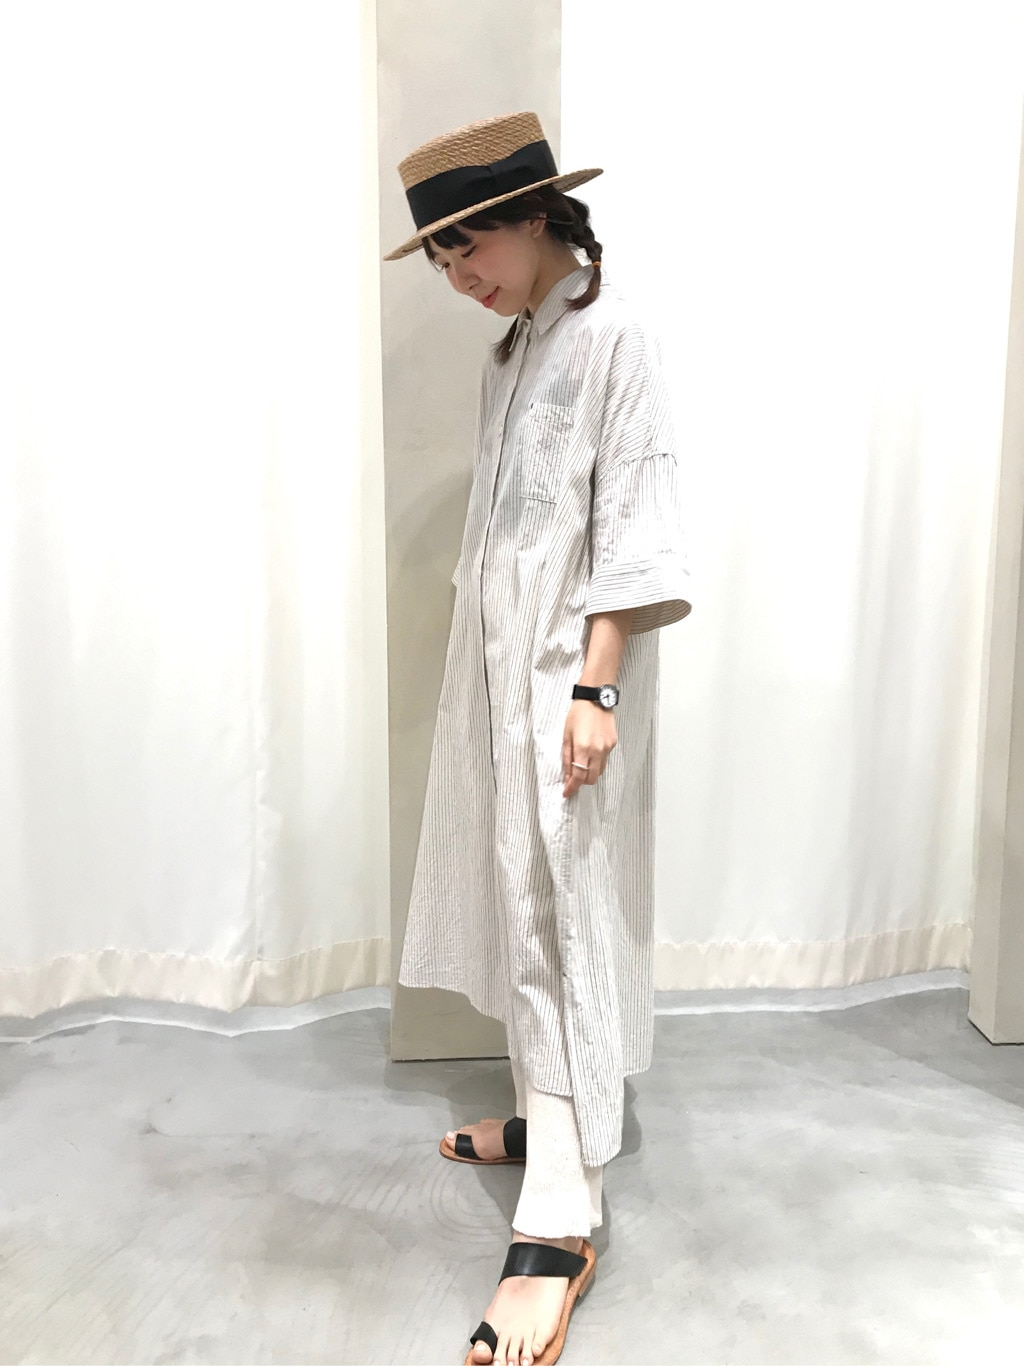 AMB SHOP PAR ICI CHILD WOMAN,PAR ICI ルミネ横浜 身長:154cm 2020.06.11